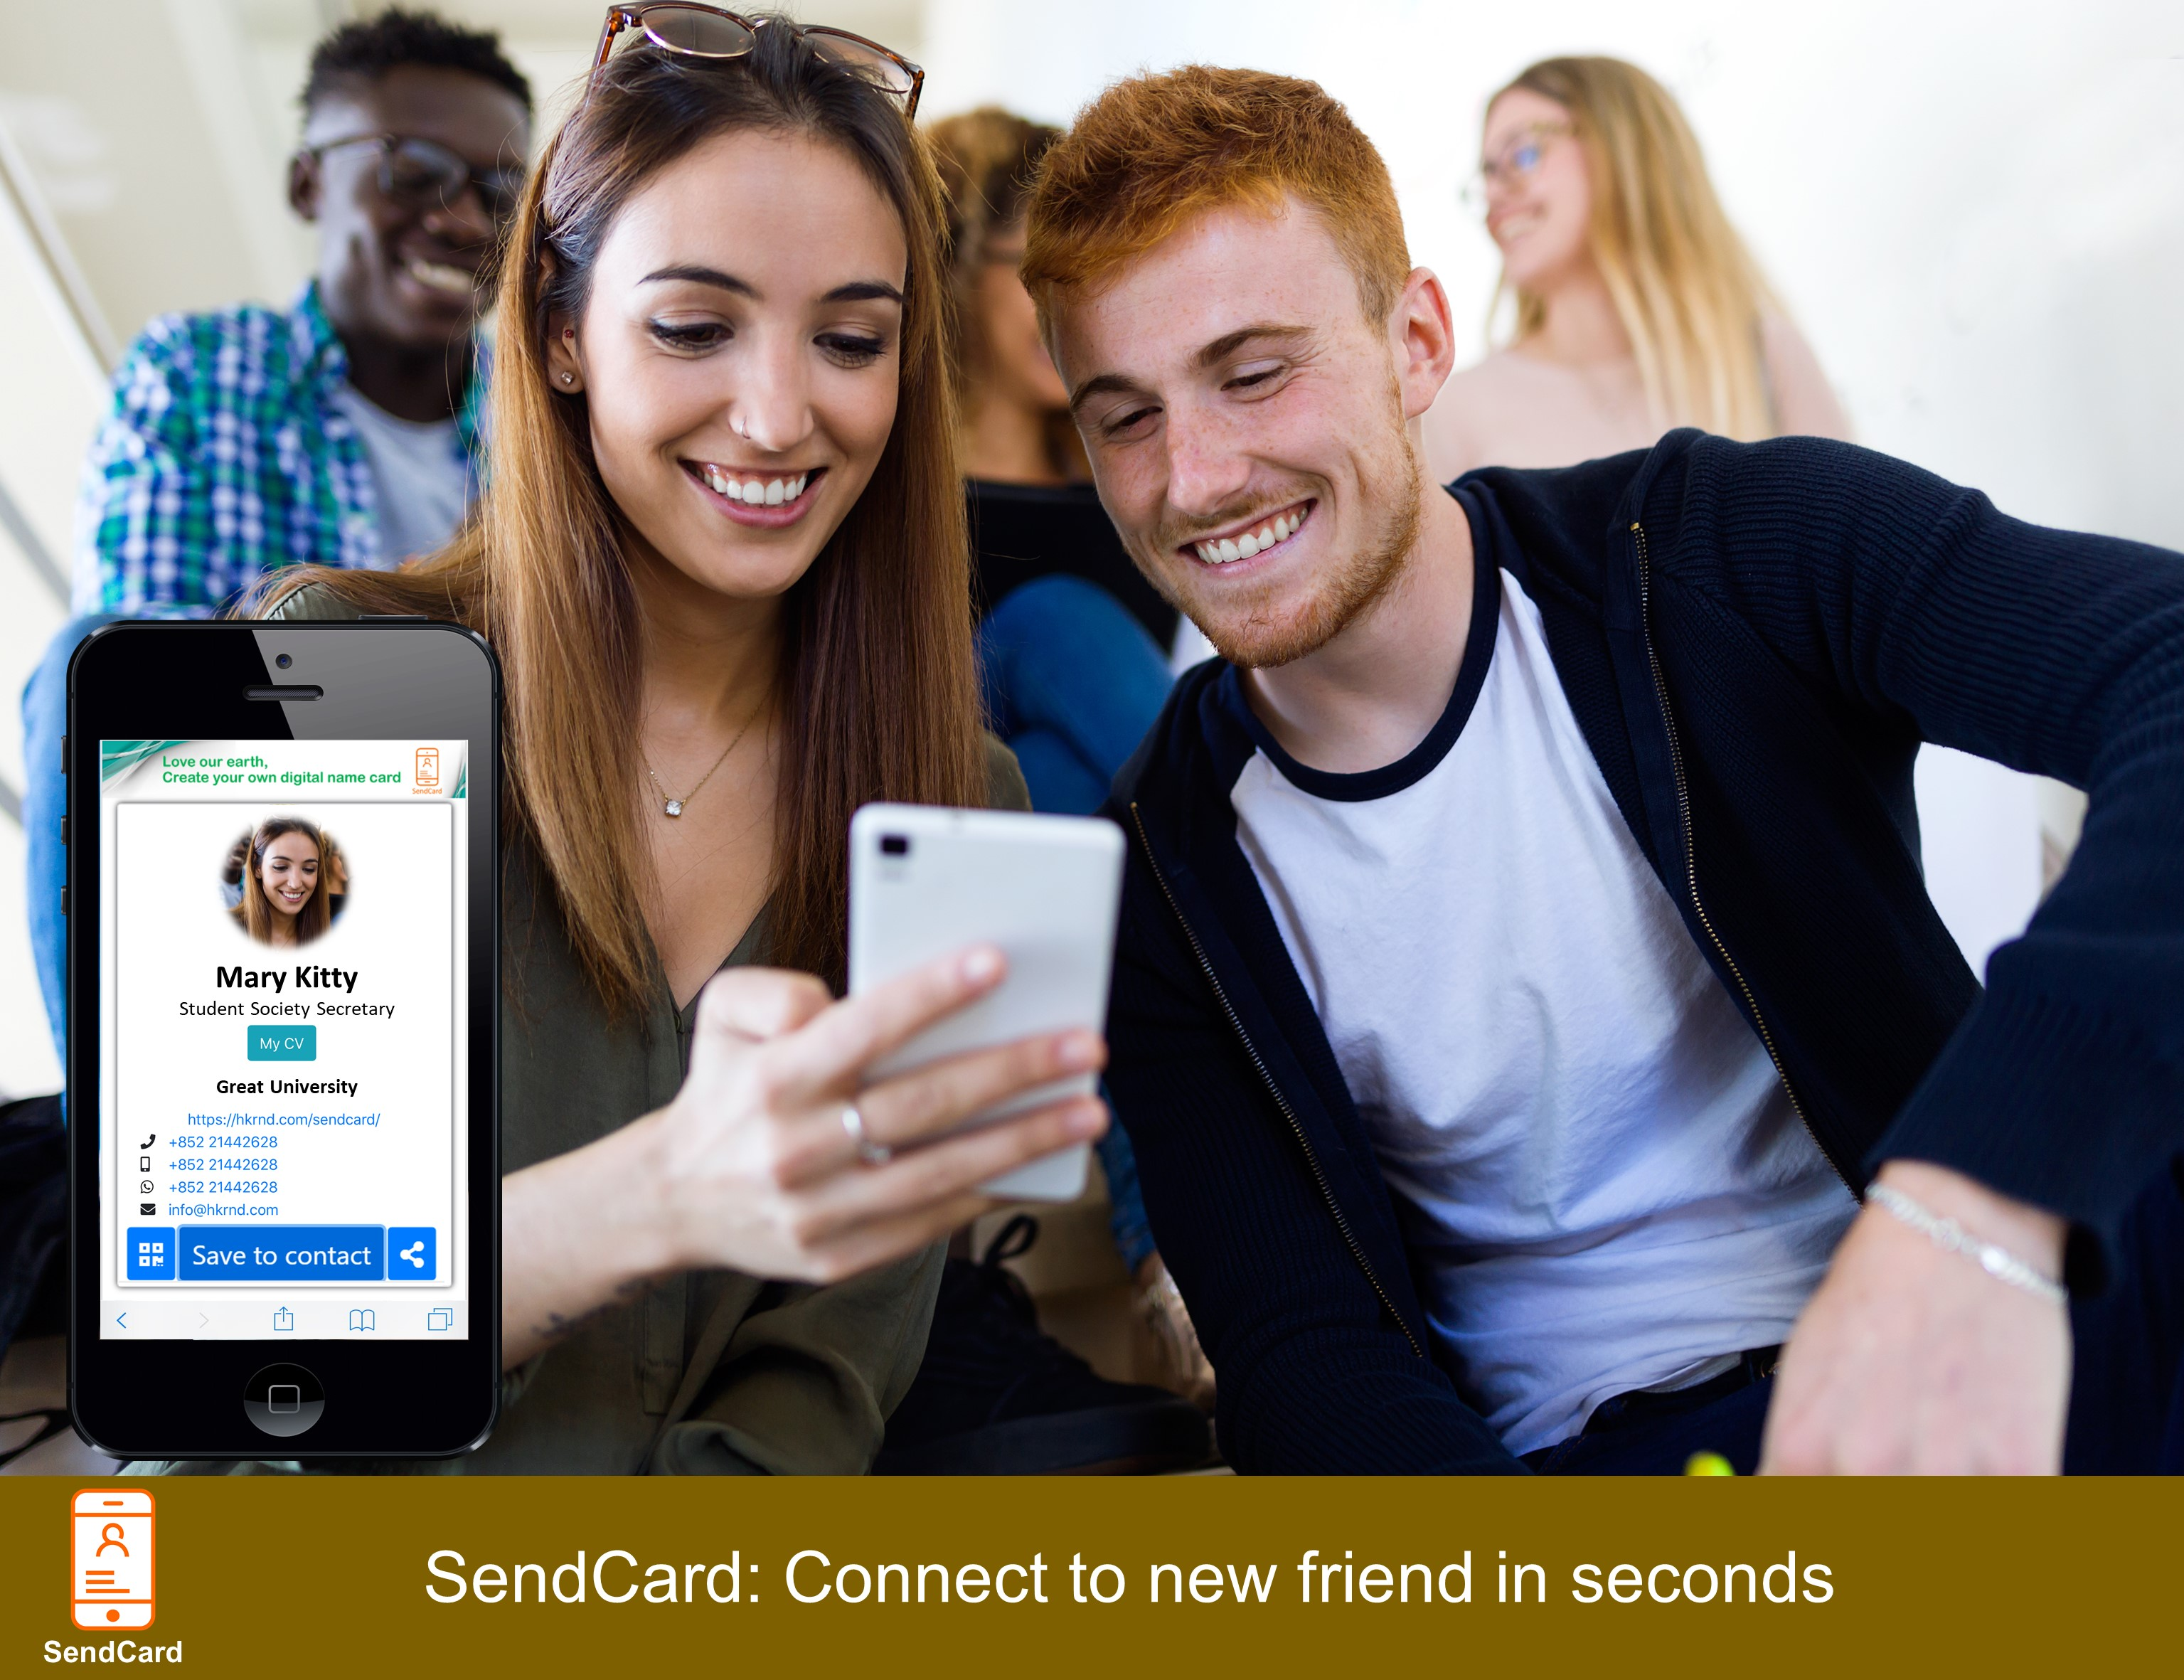 Guy exchanging contact with girl using SendCard